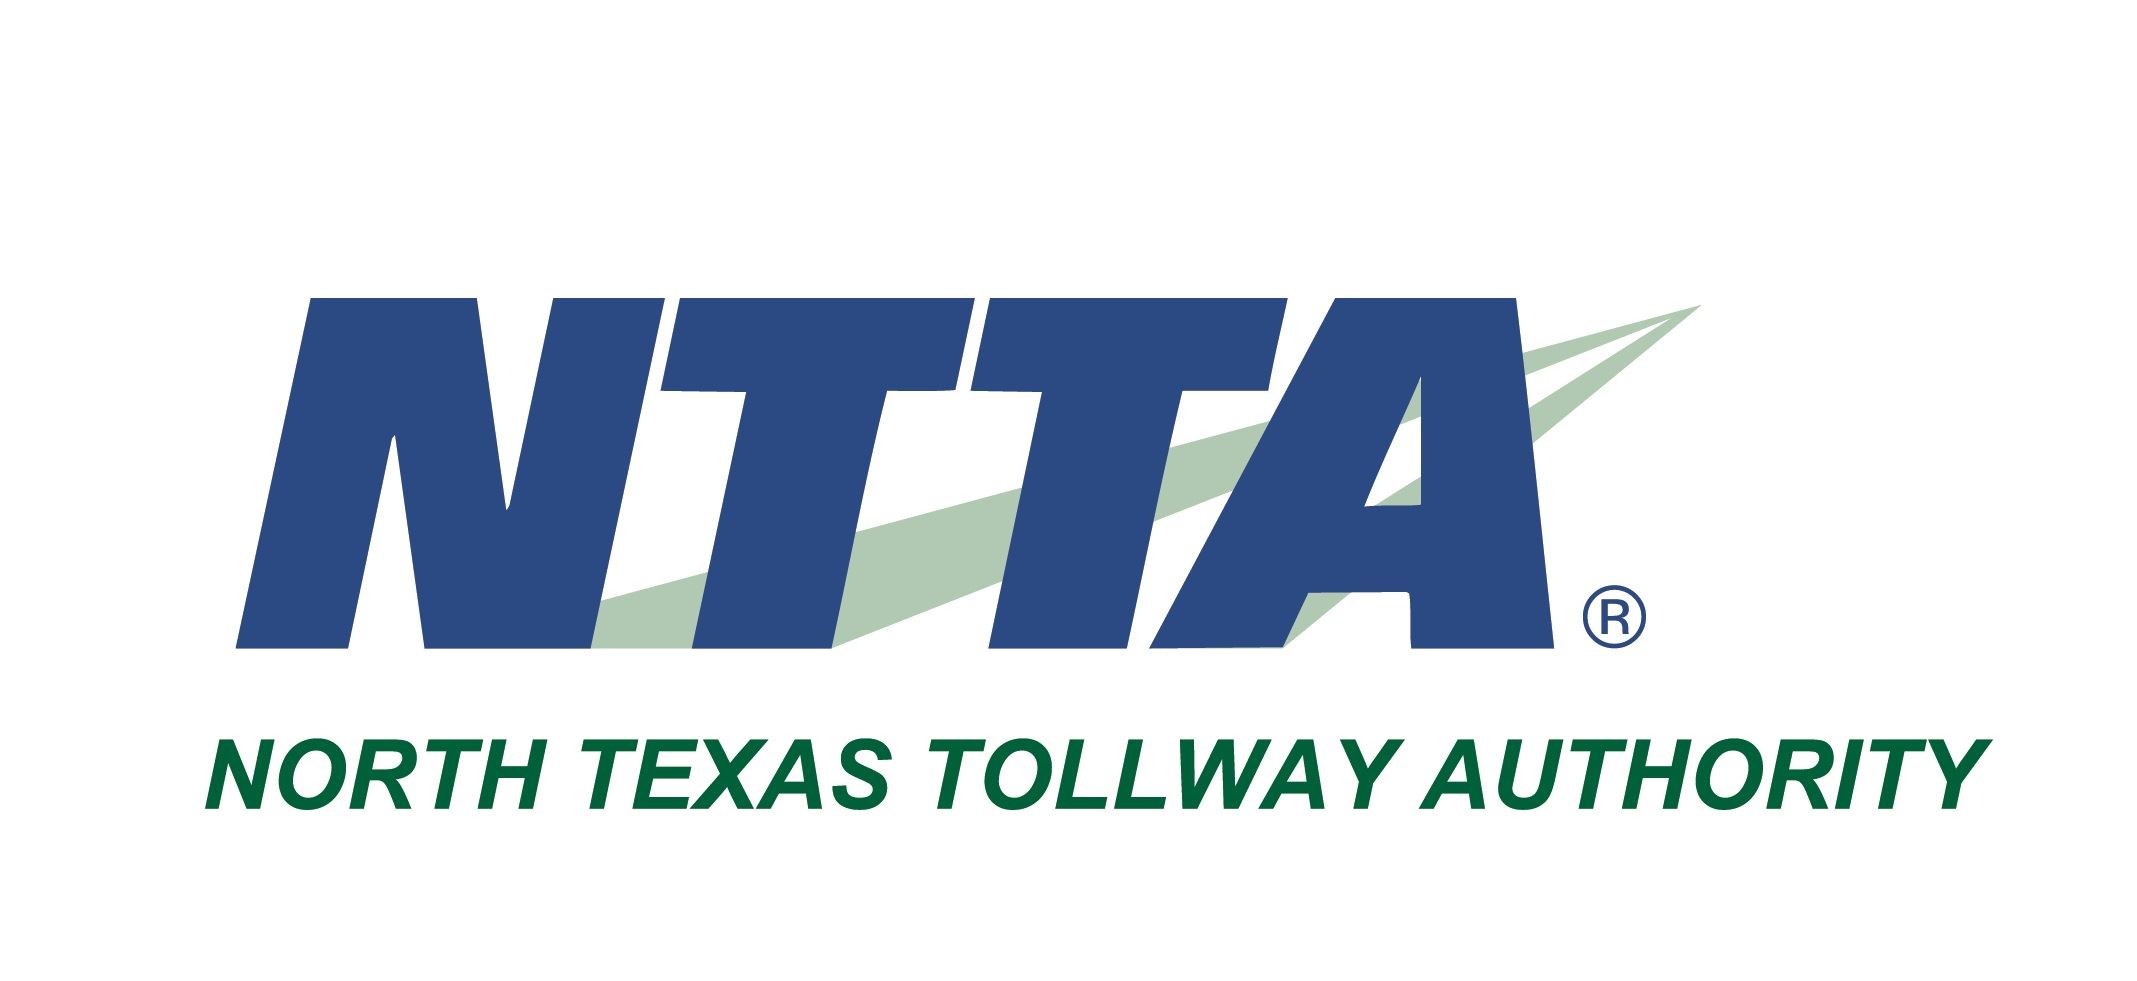 NTTA  LOGO Opens in new window